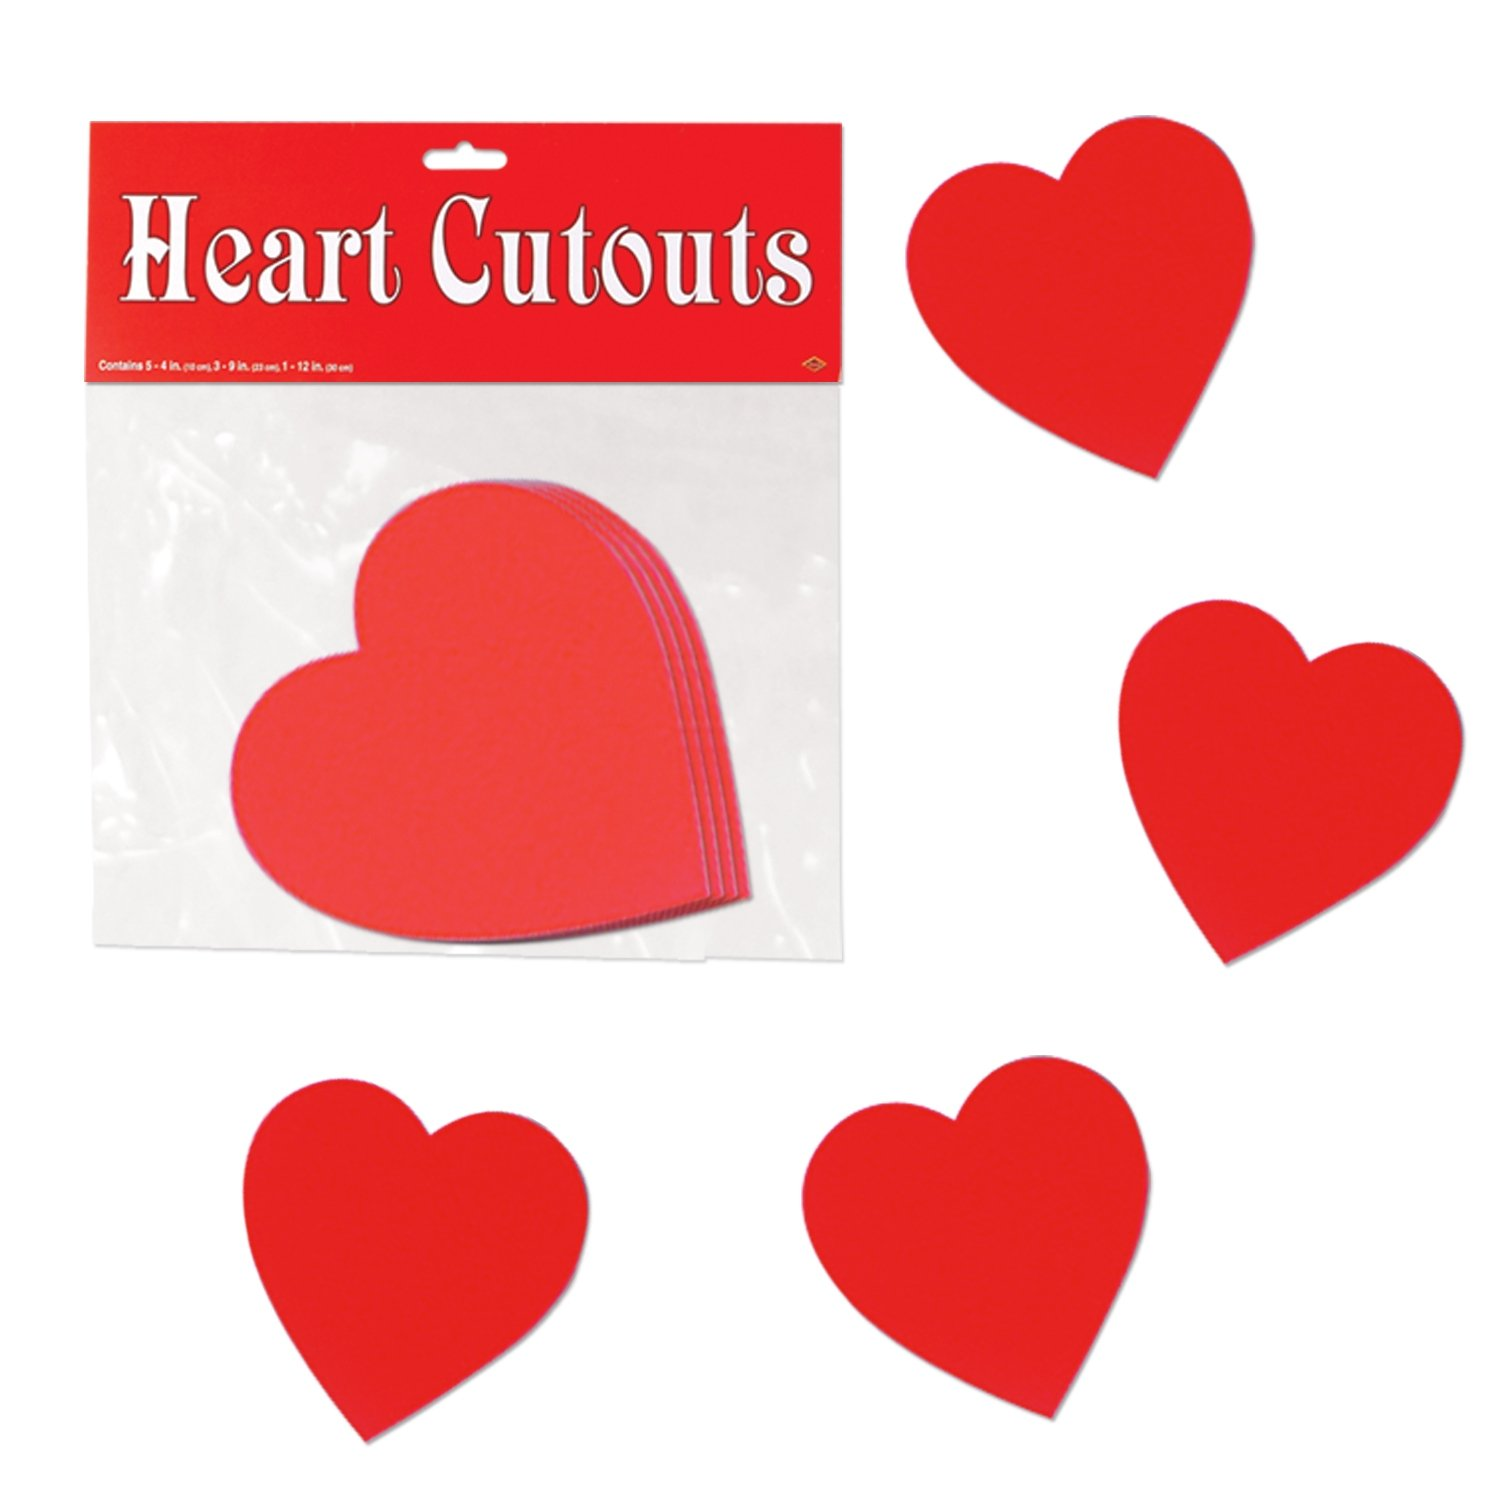 "Beistle 77840 Printed Heart Cutouts, 4"", Red, 10 Piece Pack"